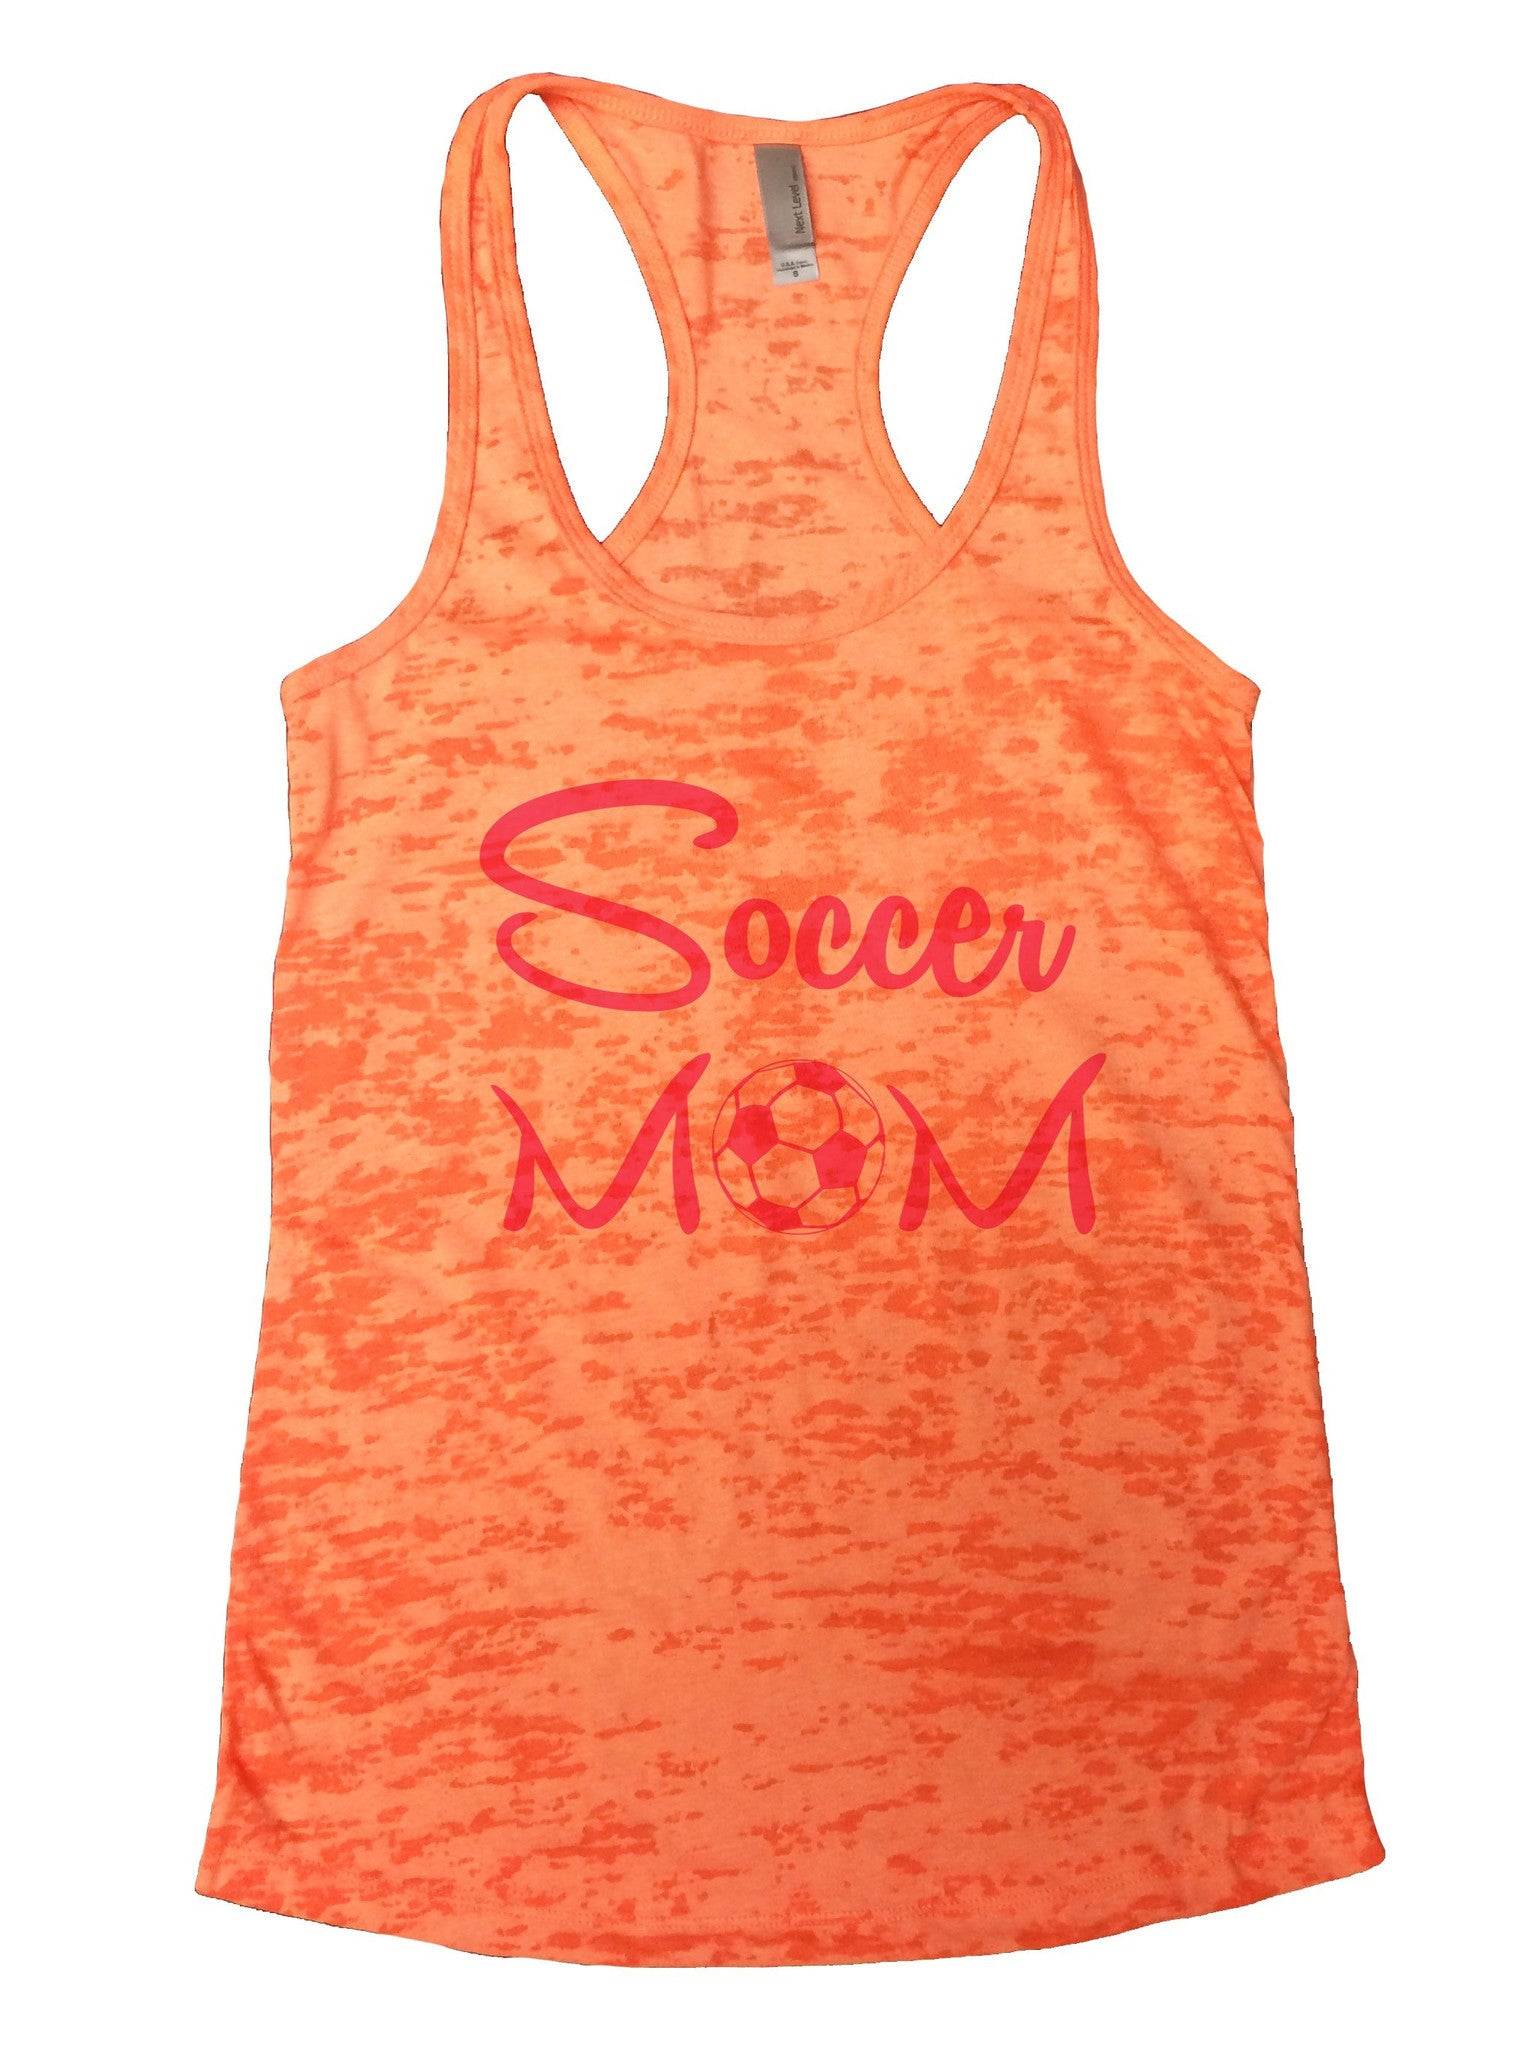 Soccer Mom Burnout Tank Top By BurnoutTankTops.com - 658 - Funny Shirts Tank Tops Burnouts and Triblends  - 3